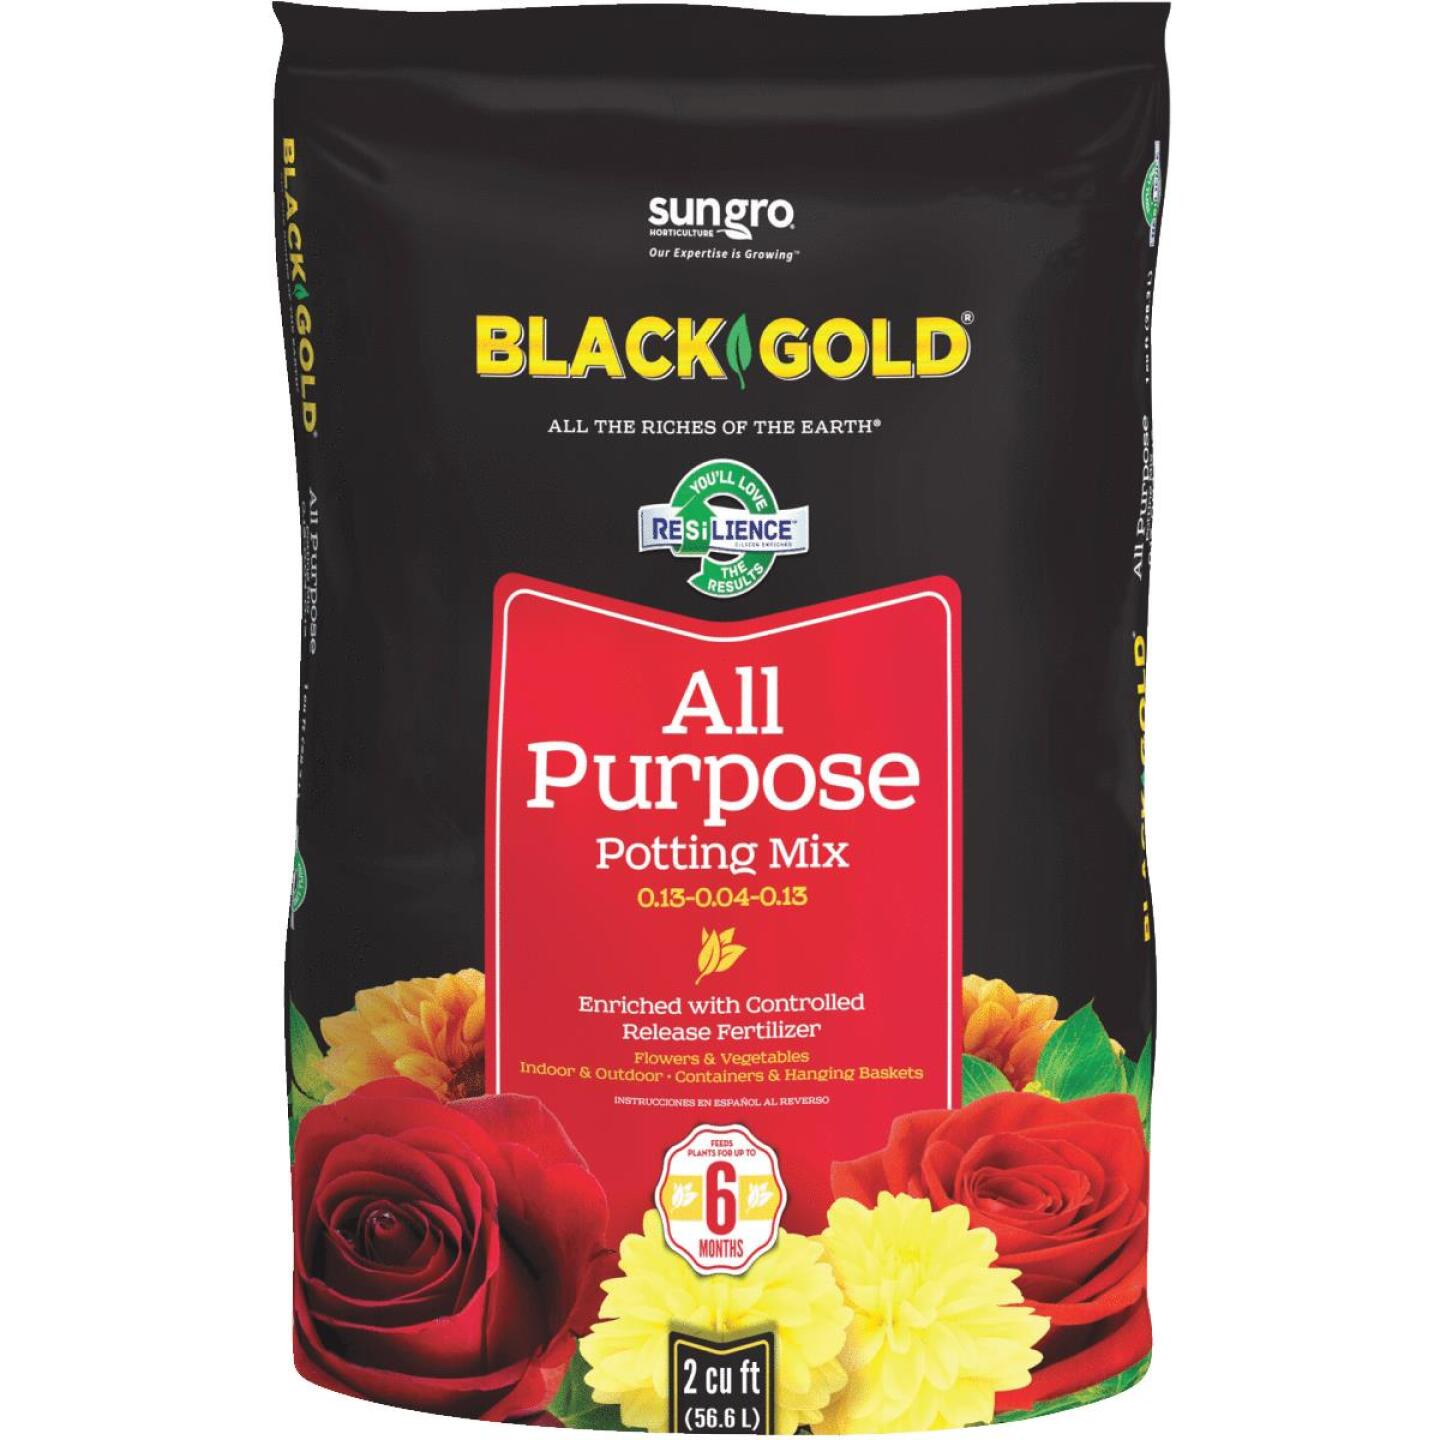 Black Gold 2 Cu. Ft. 47-1/2 Lb. All Purpose Potting Soil Image 1